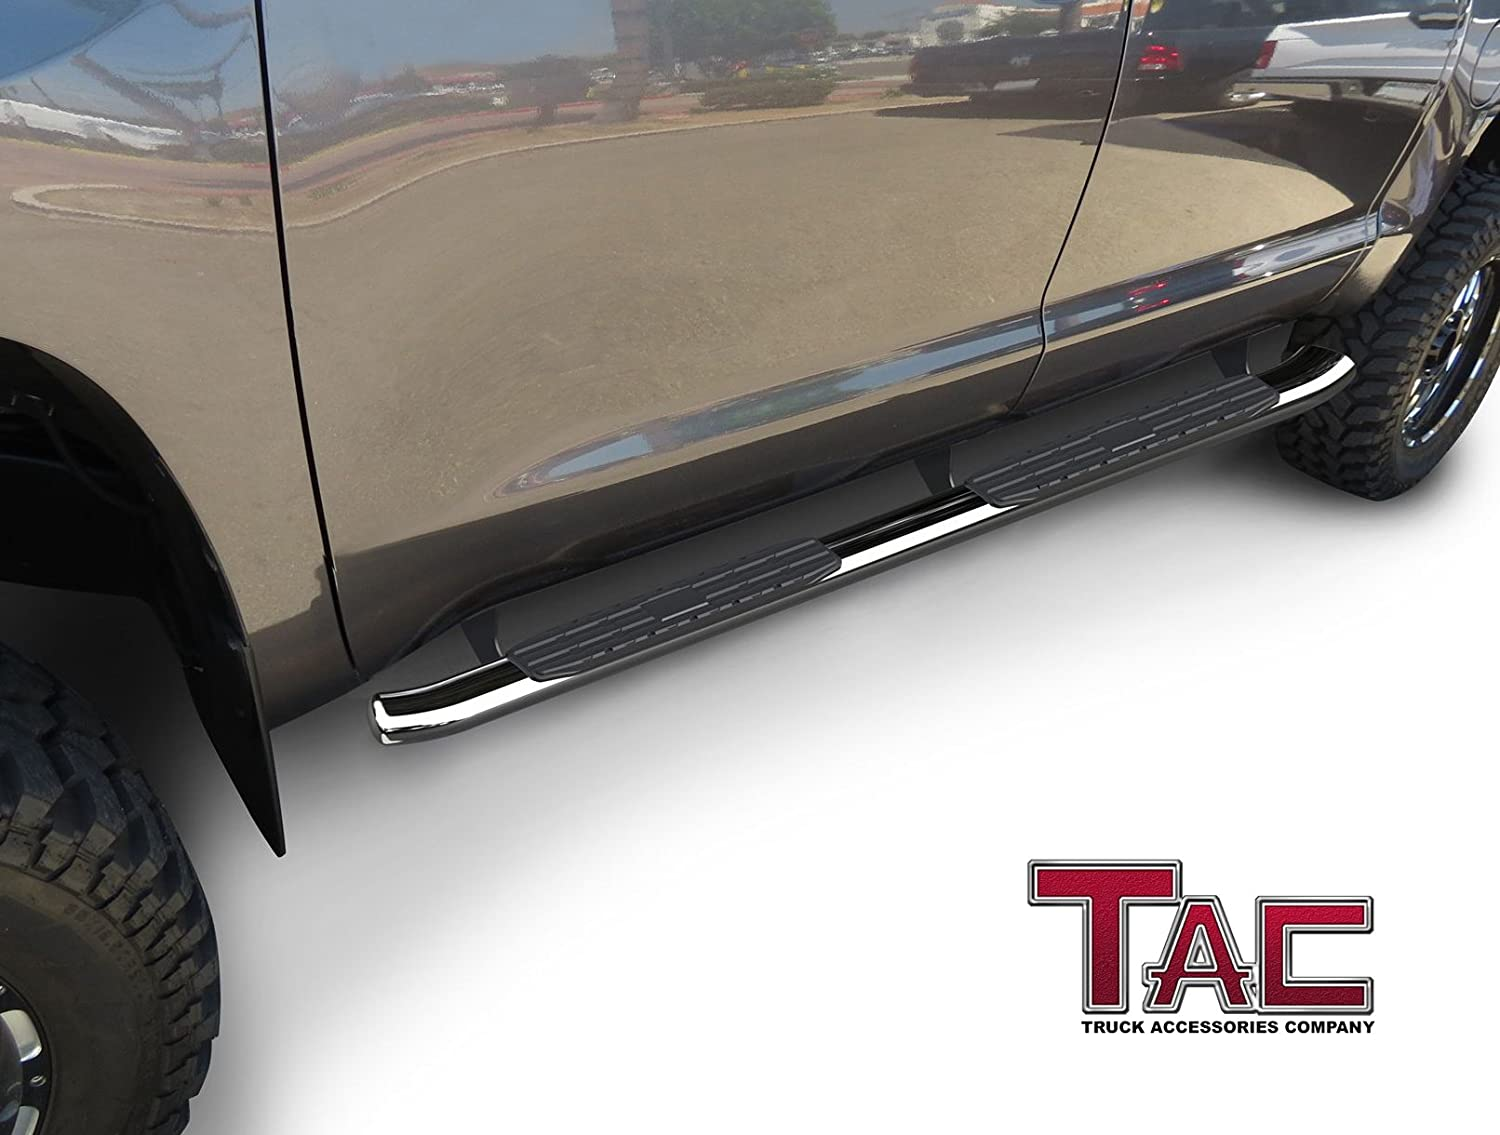 TAC 4.25 Side Steps Fit 2005-2019 Toyota Tacoma Double Cab Truck Pickup Oval Bend T304 Stainless Steel PNC Side Steps Nerf Bars Step Rails Running Boards Rock Panel Off Road Exterior Accessories 2PCS